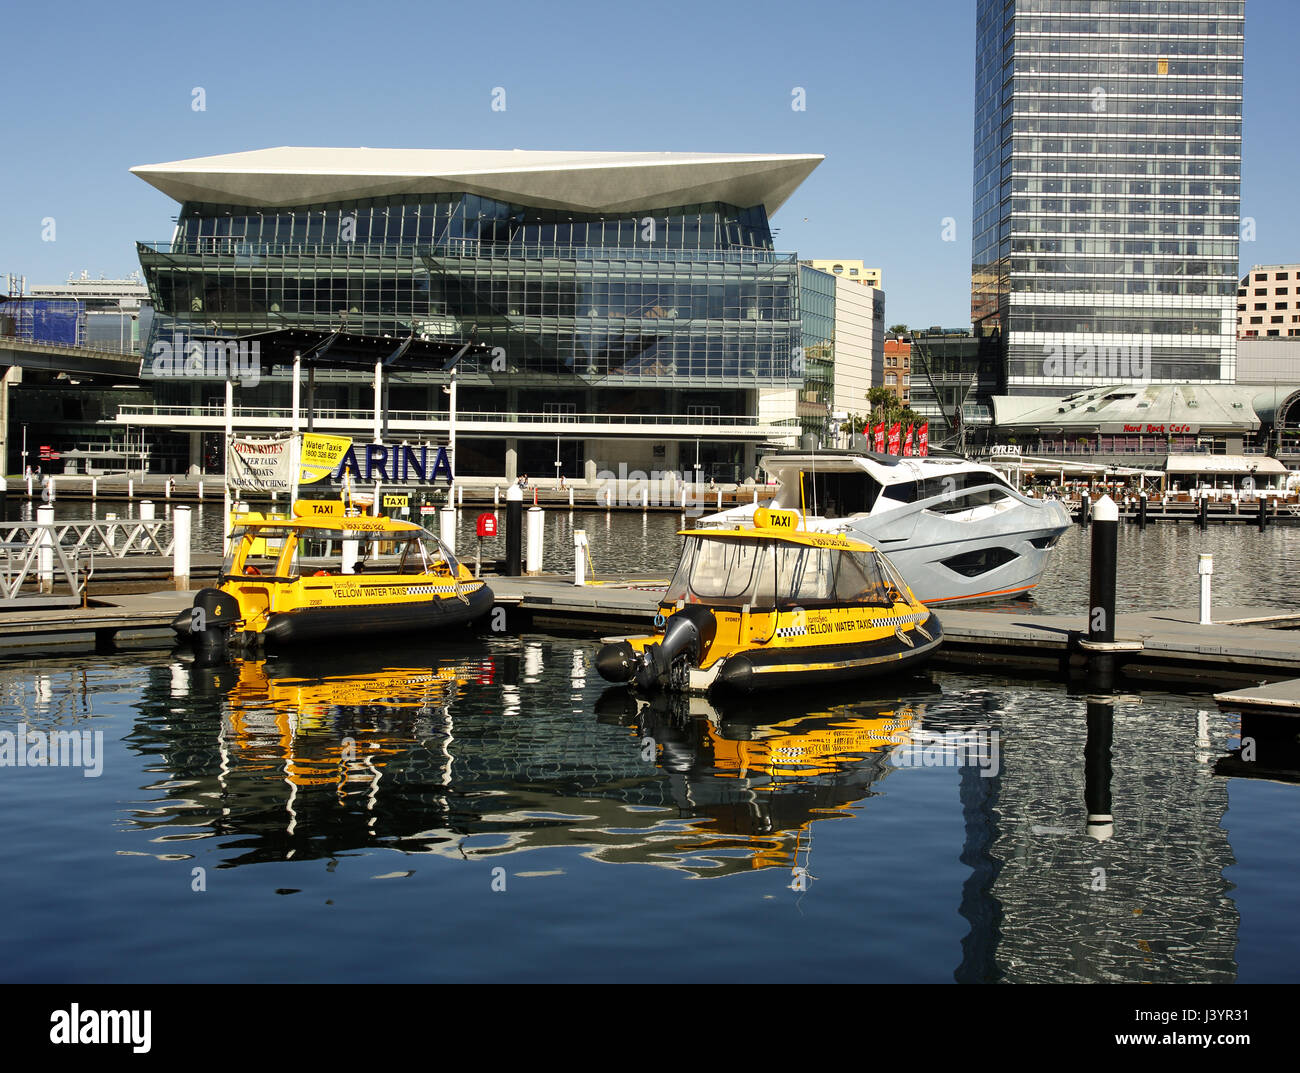 Two water taxi's moored in Cockle Bay, Darling Harbour, Sydney - Stock Image